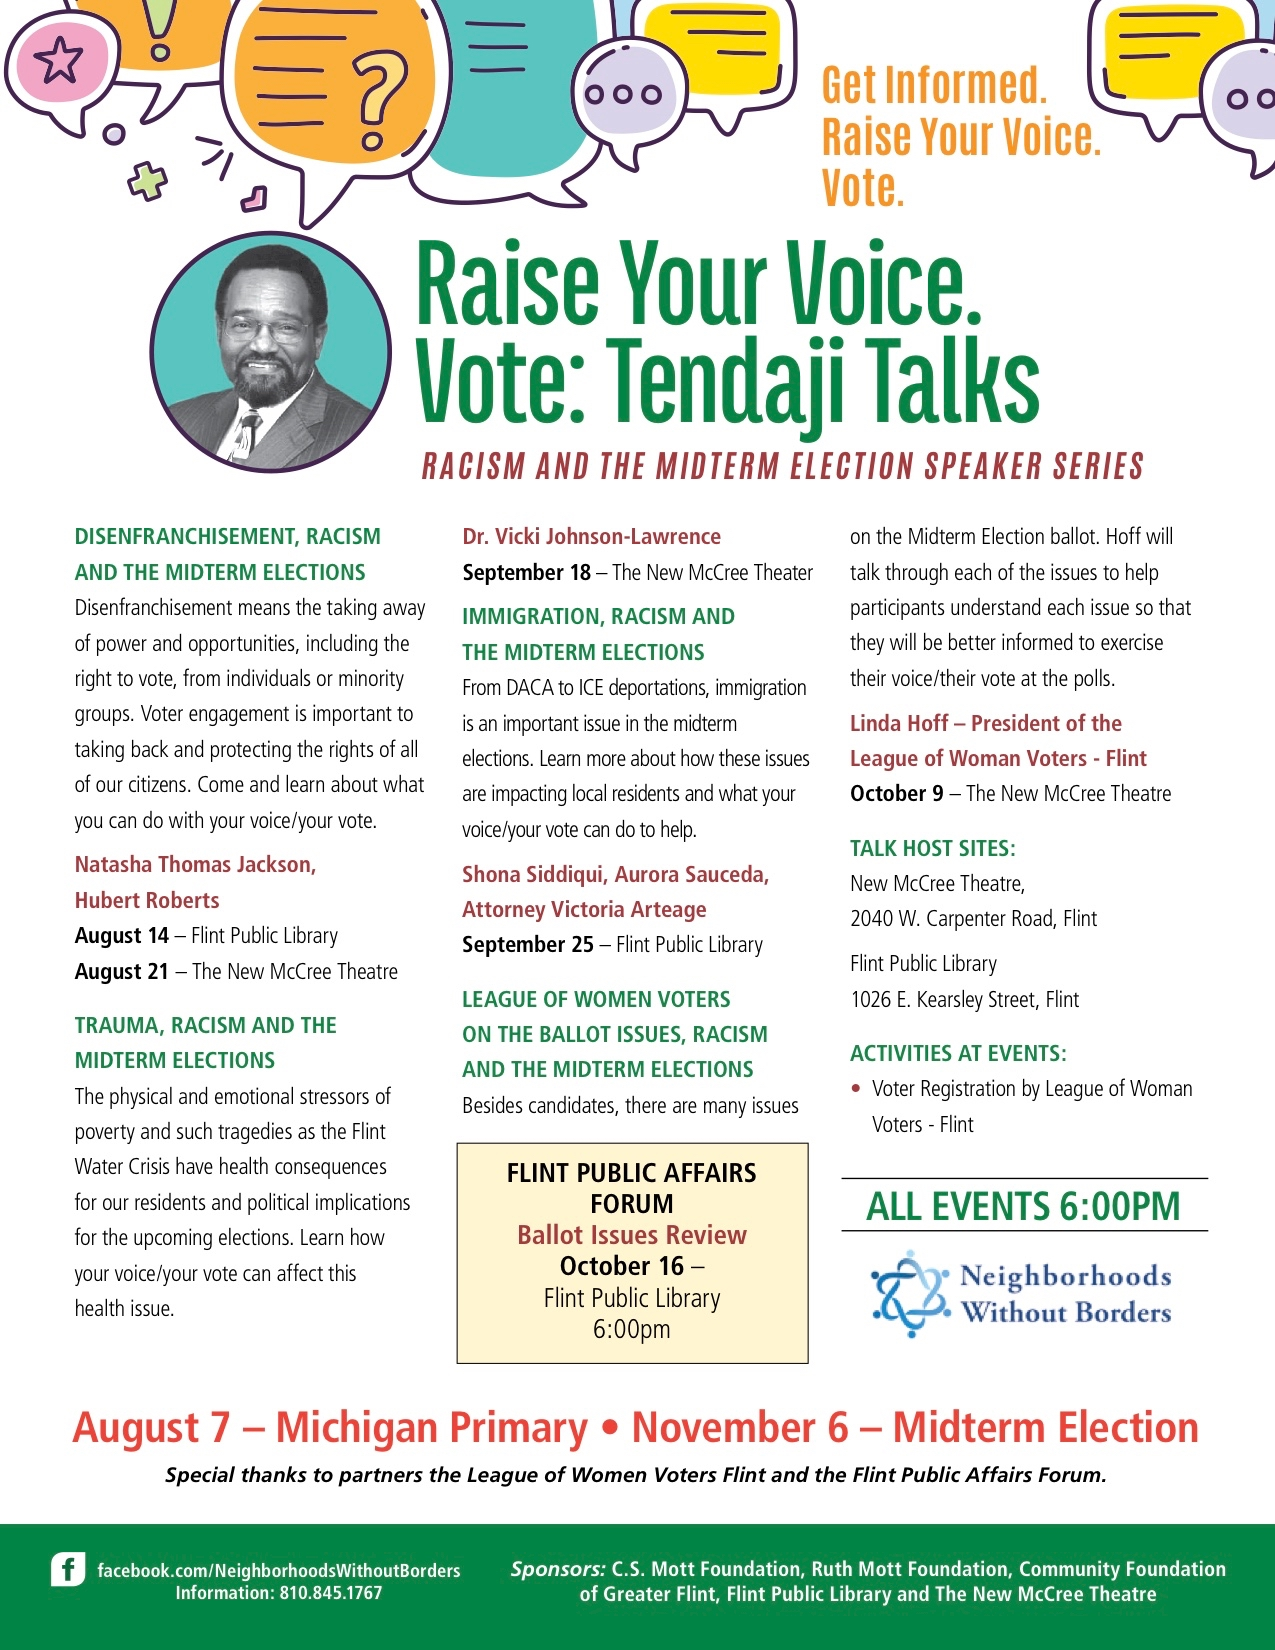 Immigration, Racism and the Midterm Elections - Tendaji Talks @ Flint Public Library | Flint | Michigan | United States